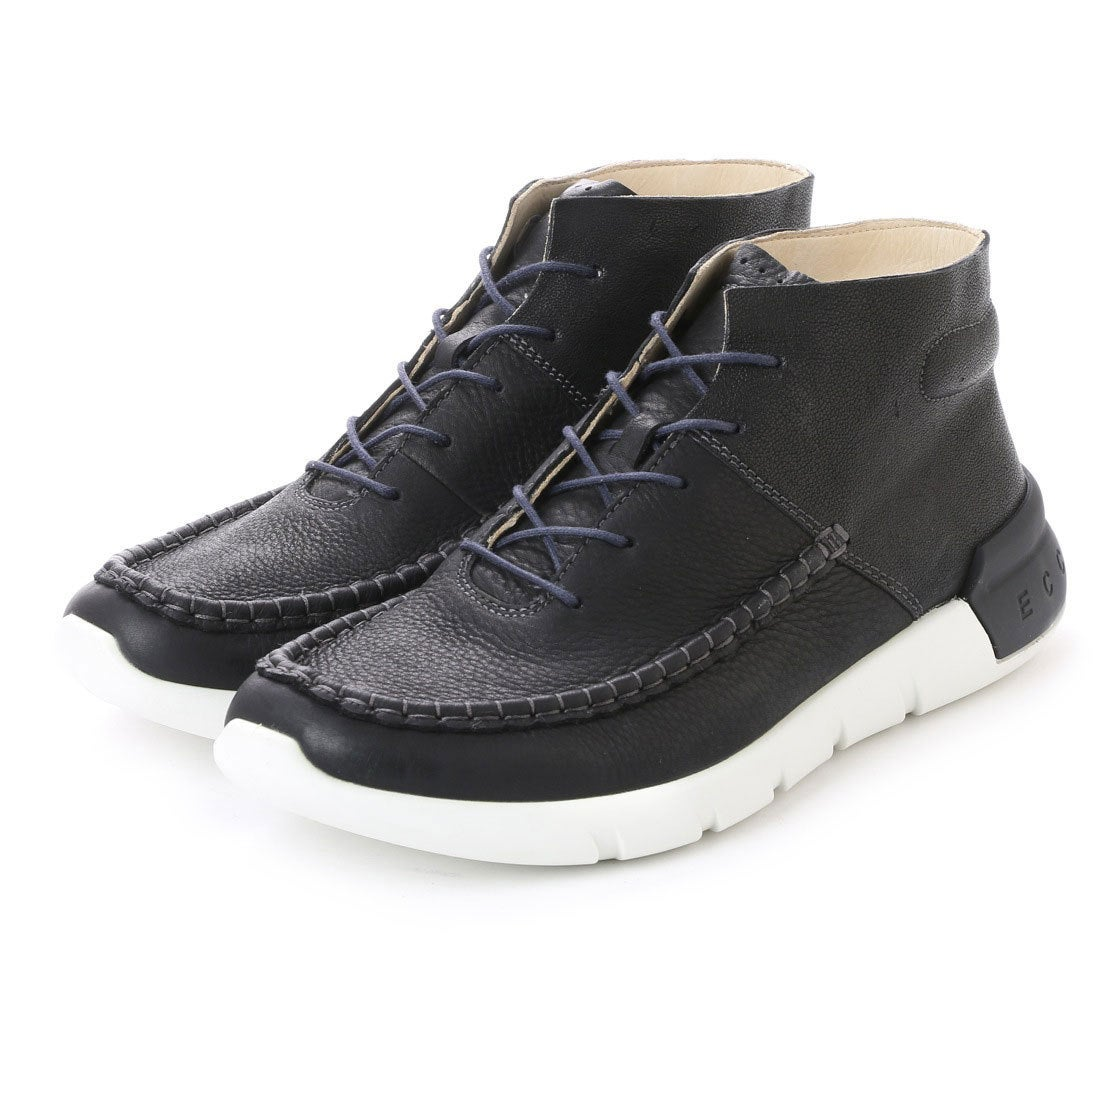 【SALE 20%OFF】エコー ECCO Cross X (BLACK/BLACK) メンズ